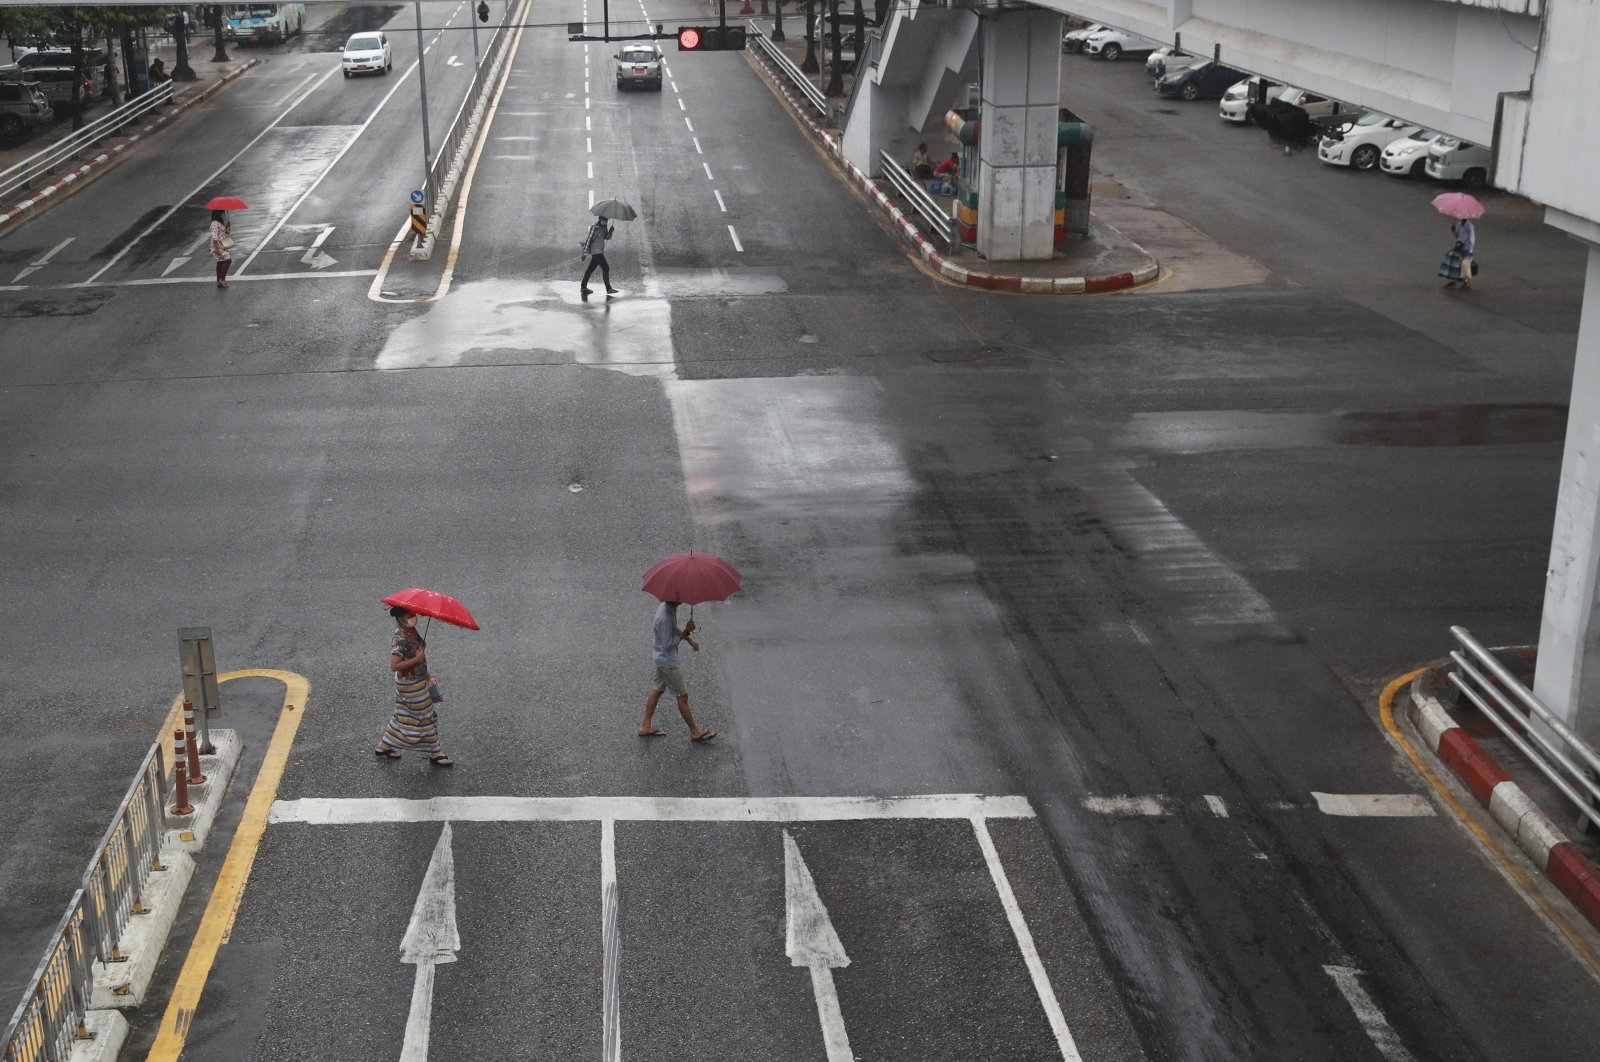 Pedestrians wearing face masks use umbrellas to protect themselves from the rain as they cross a road in downtown Yangon, Myanmar, July 19, 2021. (AP Photo)